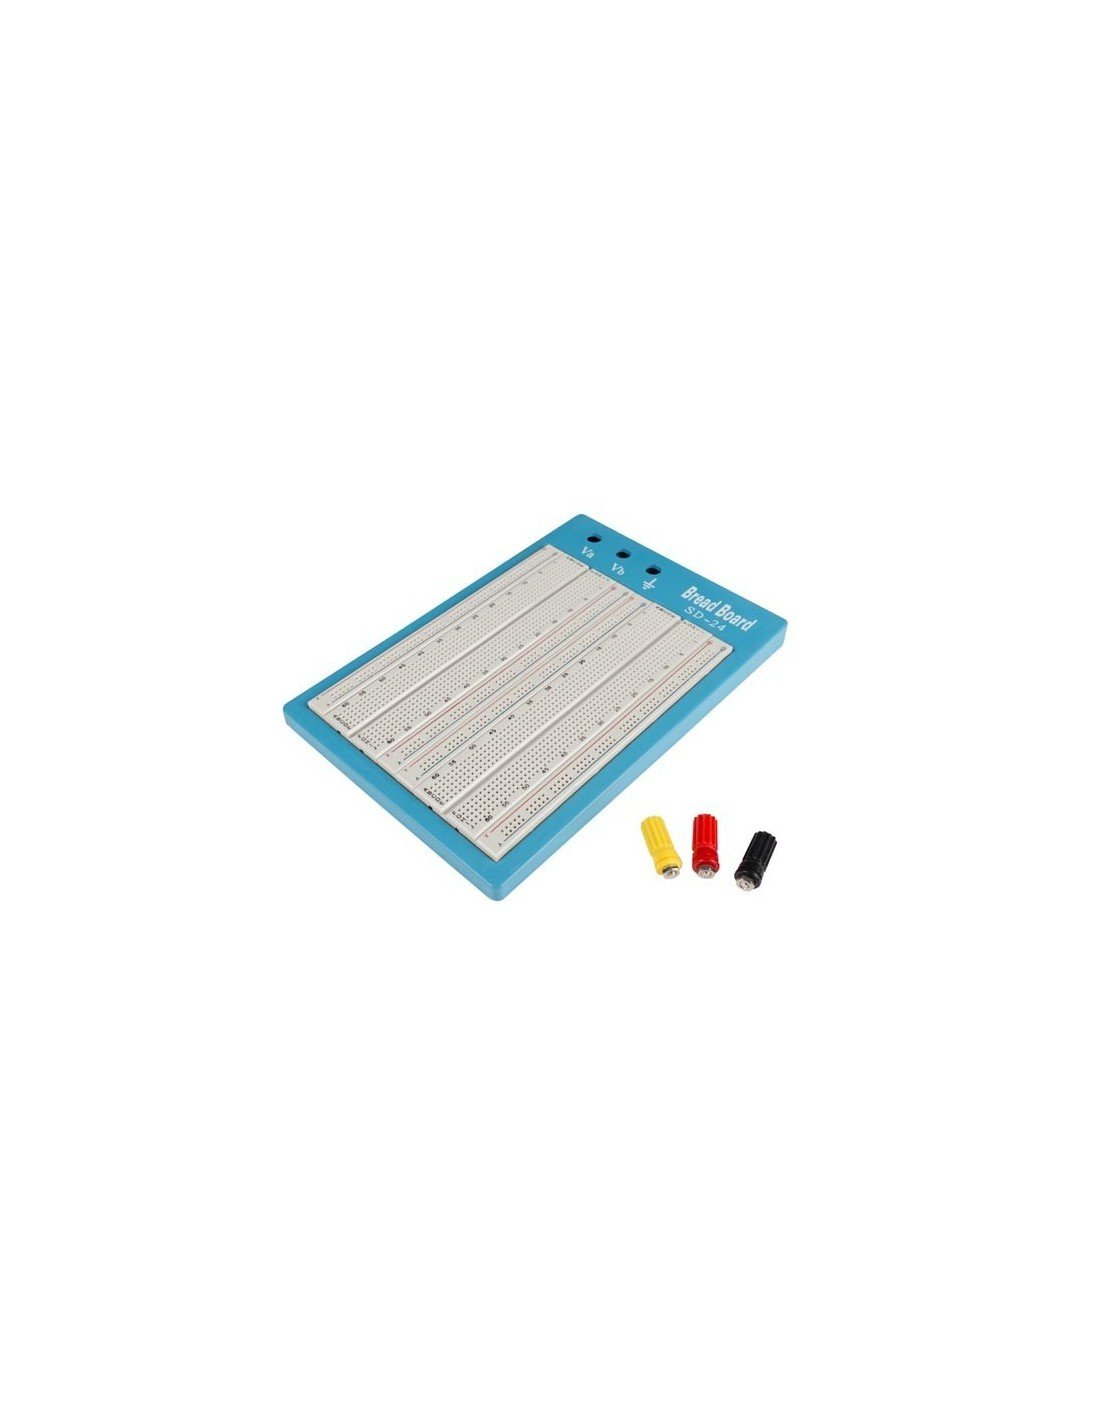 Velleman VTBB4 High-Quality 1680 Holes Breadboard, Multi-Colour